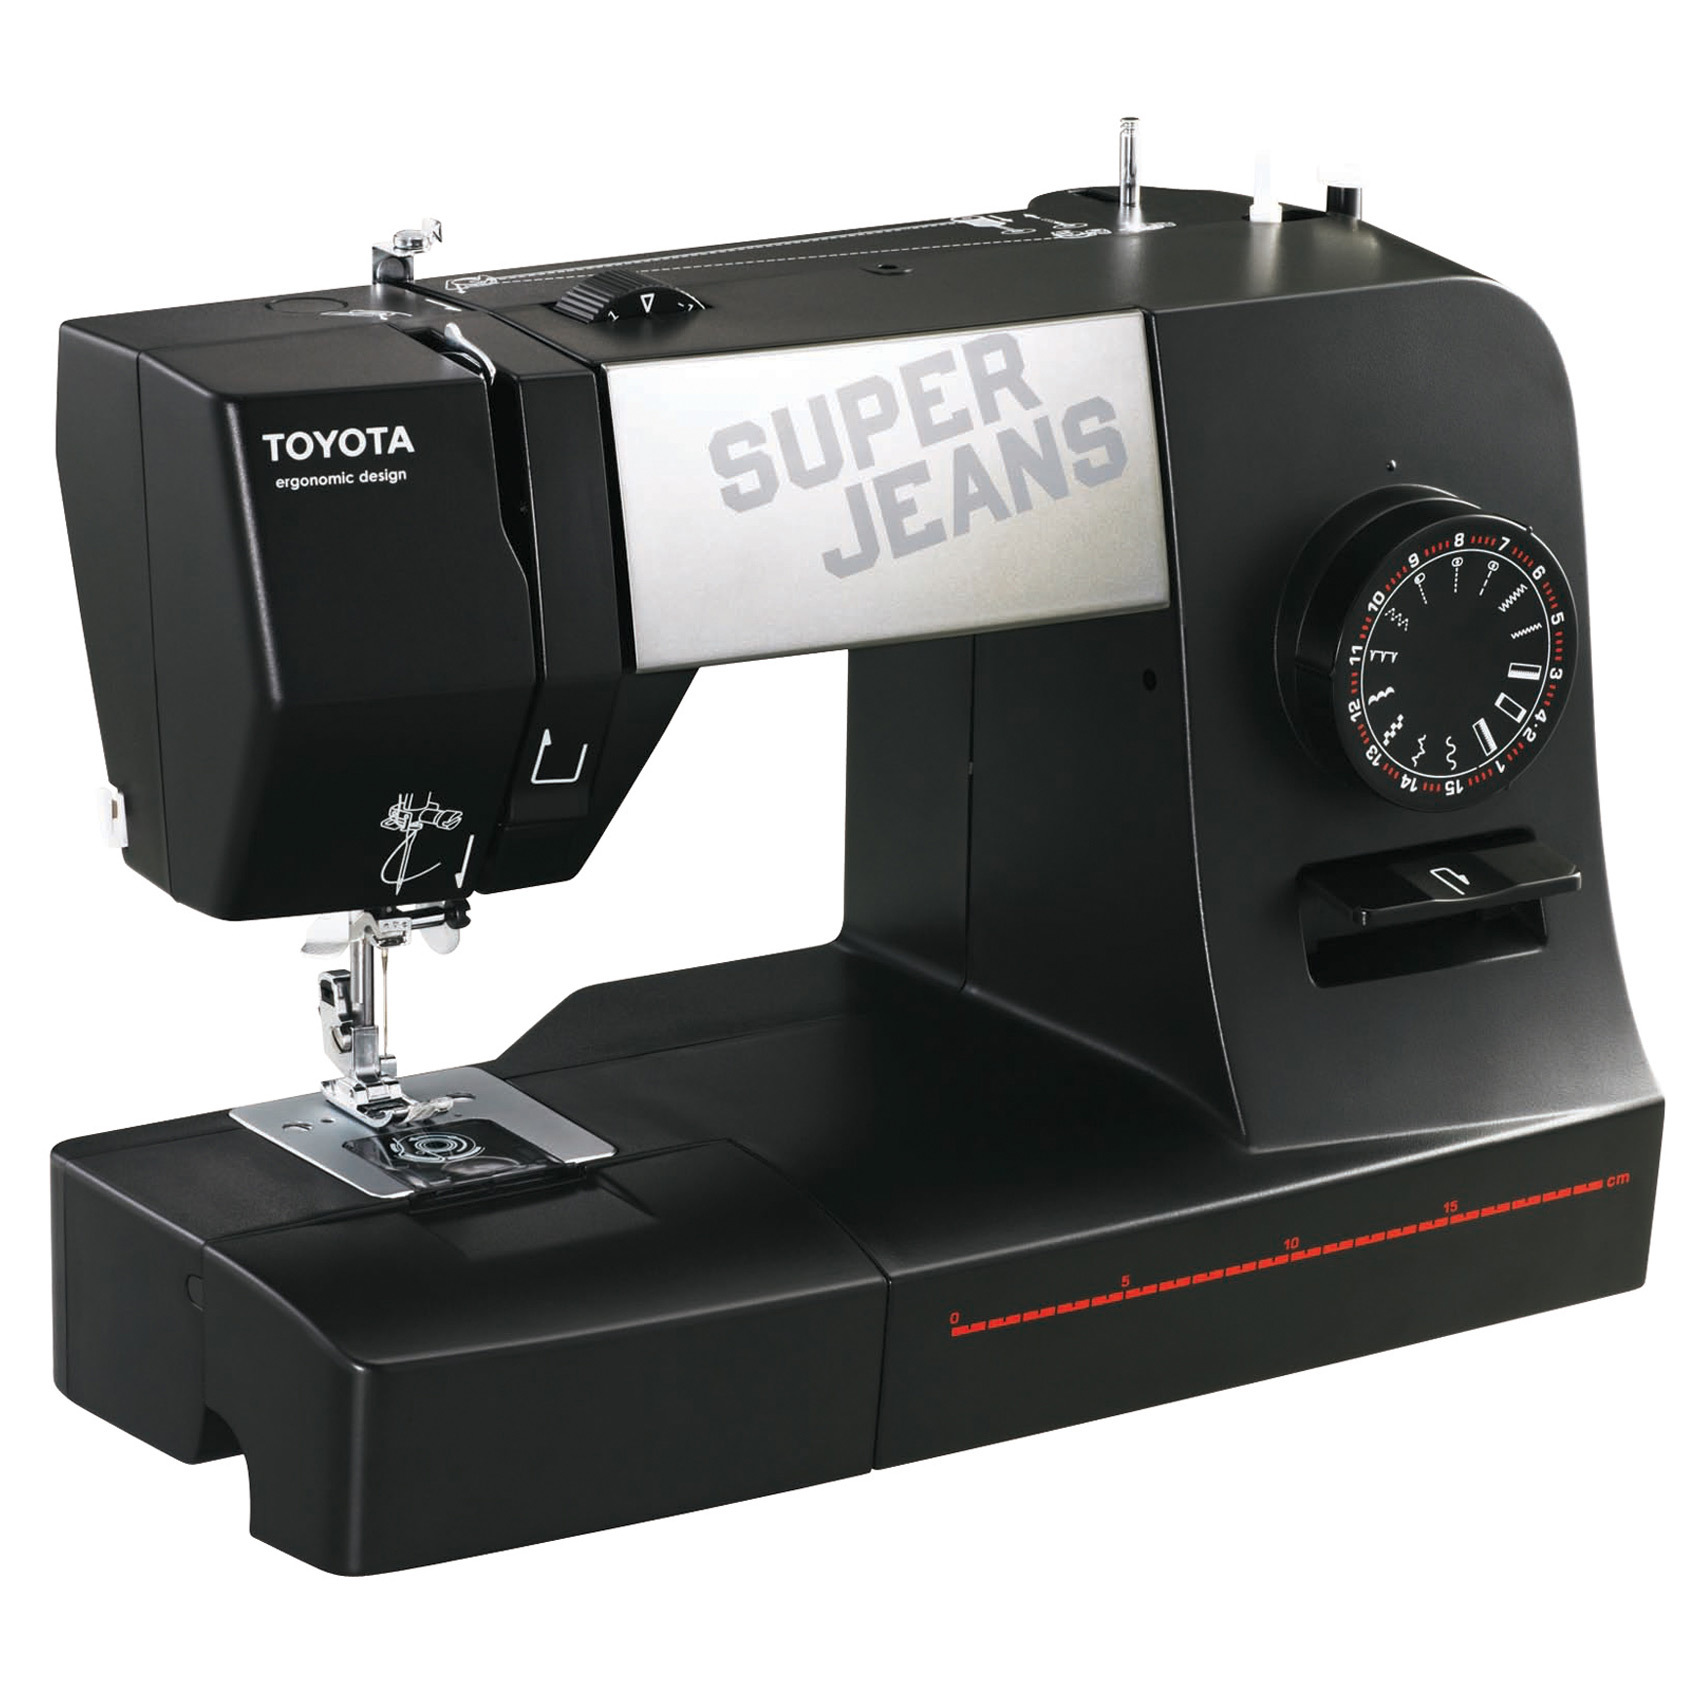 TOYOTA SEWING MACHINE J15